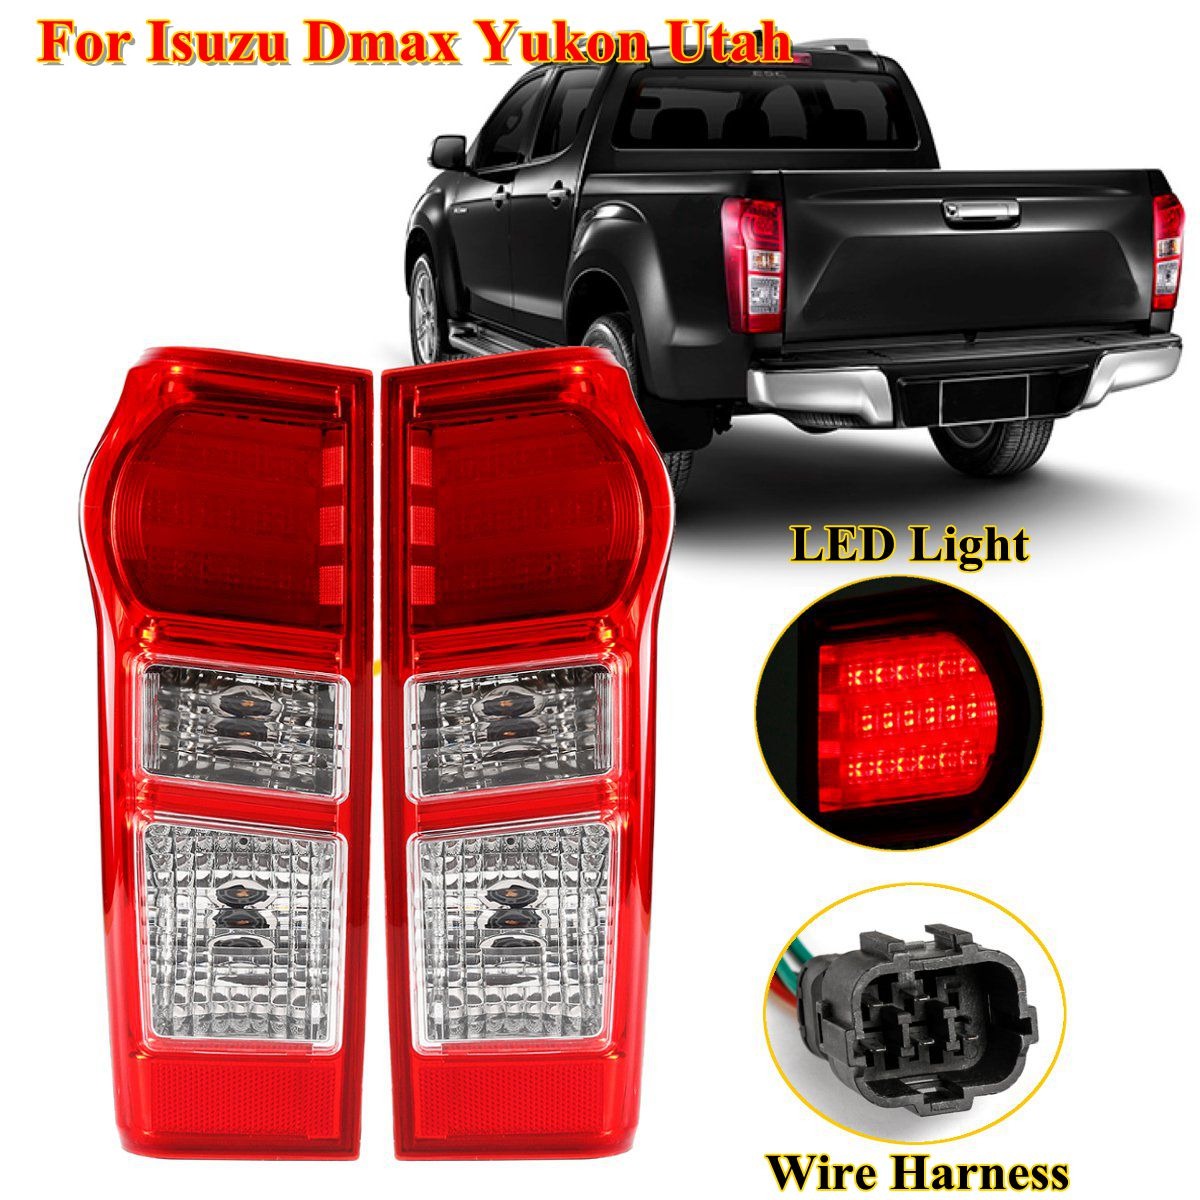 FIT FOR ISUZU DMAX D-MAX PICKUP 2012-2015 NO LED PAIR TAIL LIGHTS NORMAL TYPE